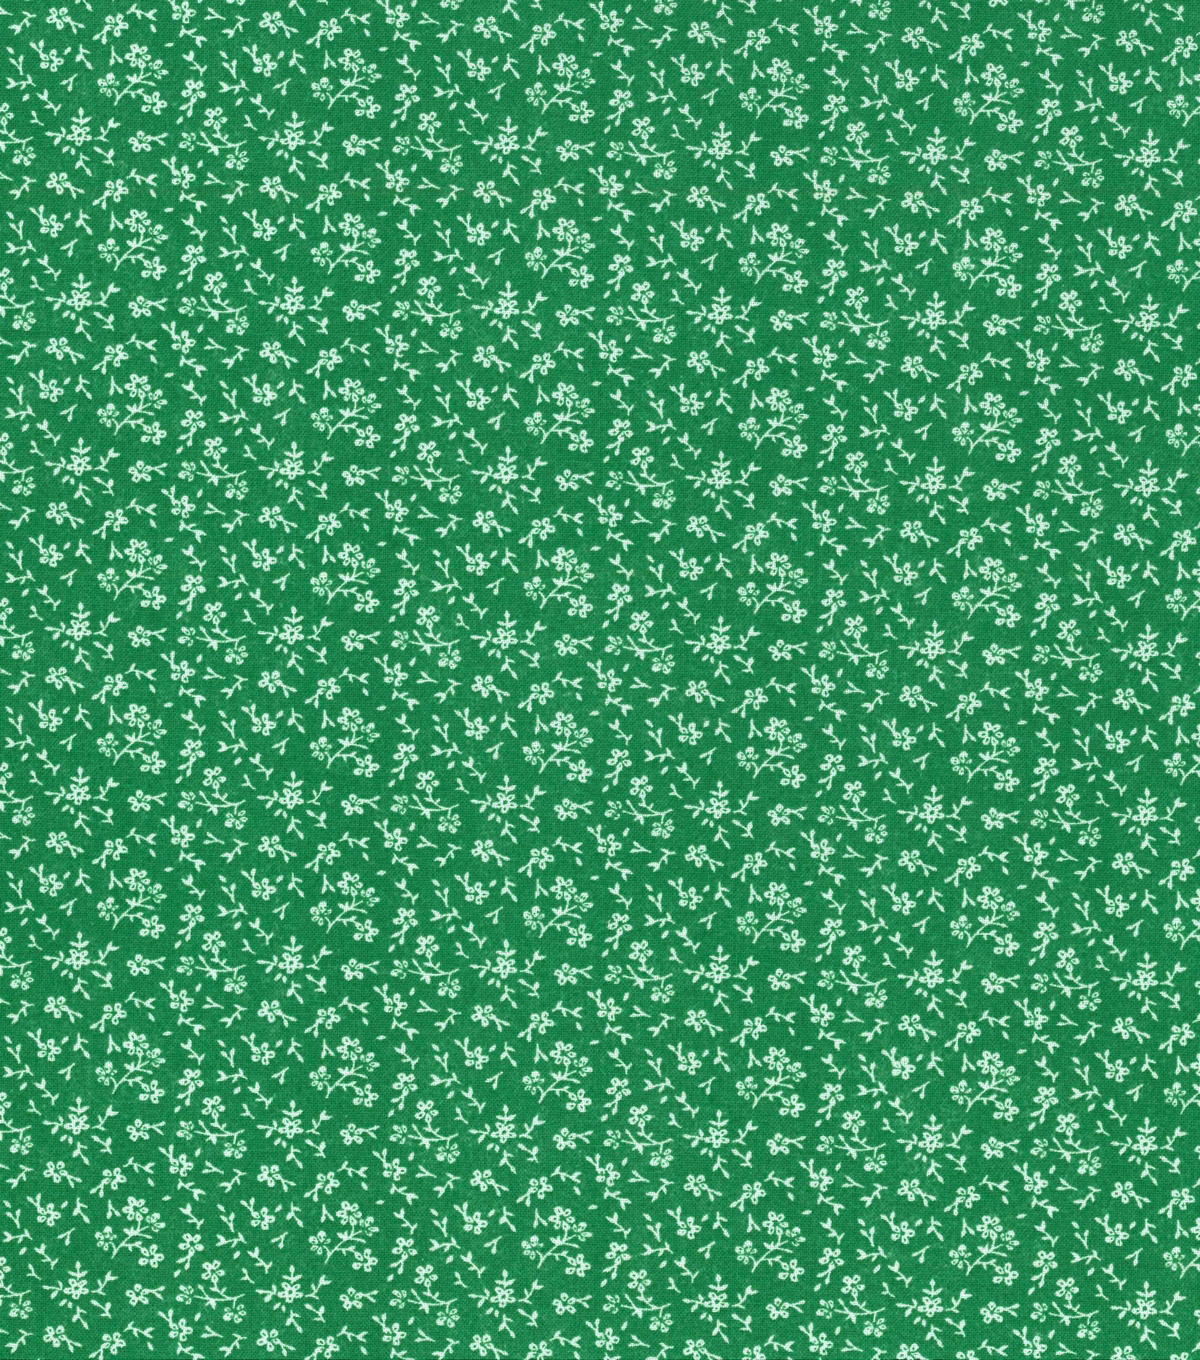 Keepsake Calico Cotton Fabric-Tossed Flowers on Green